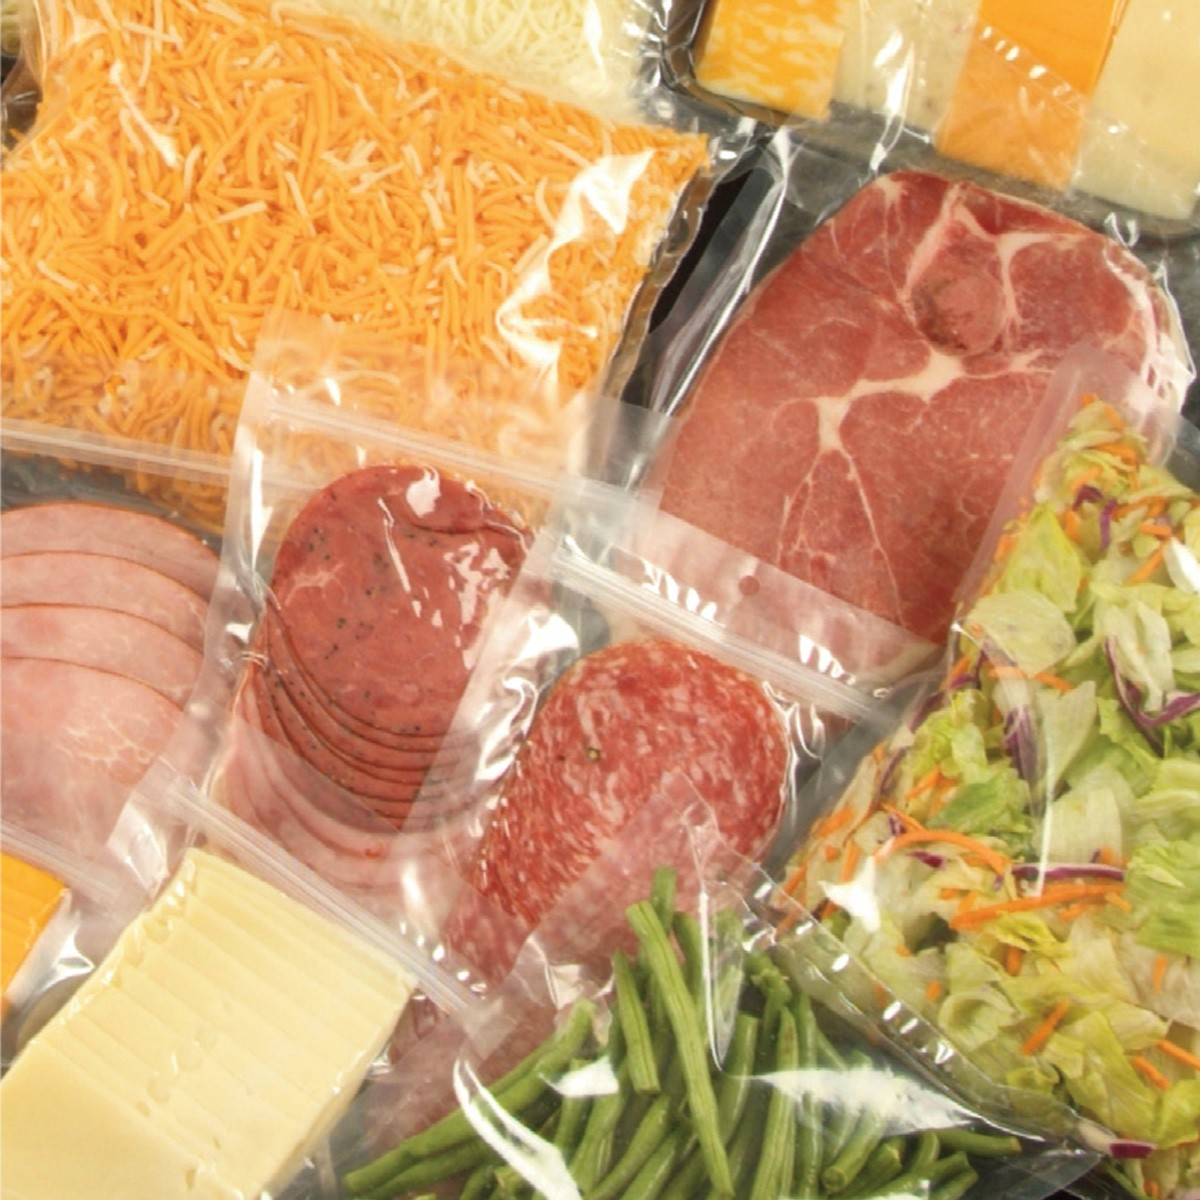 4 Mil Vacuum Packaging Pouches With Prices Starting At $52.26